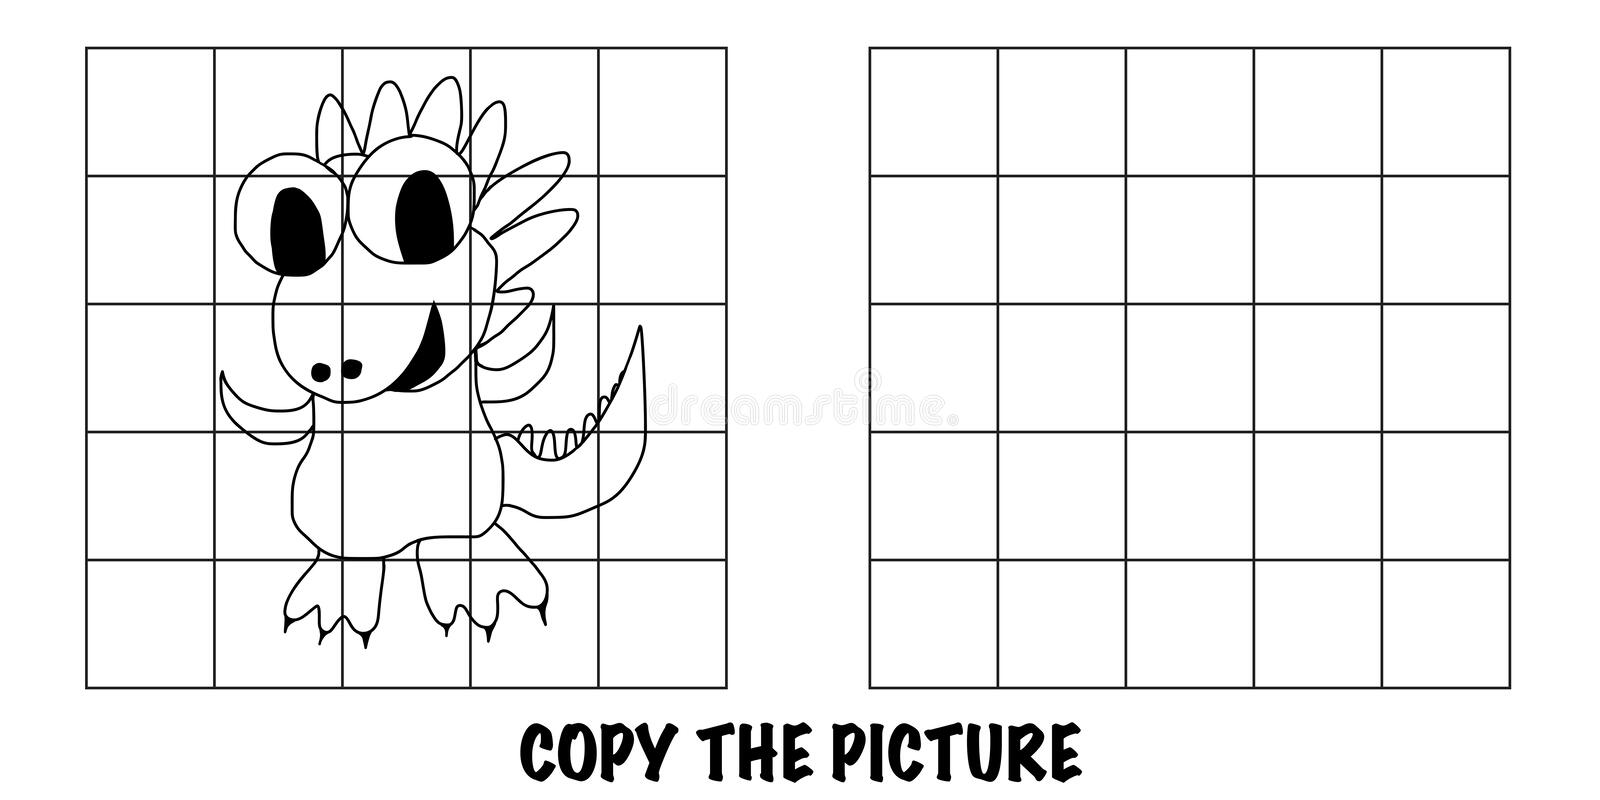 Copy The Picture of a happy dragon. Copy The Picture of a happy smiling dragon. Good for kids to improve their drawing skills royalty free illustration